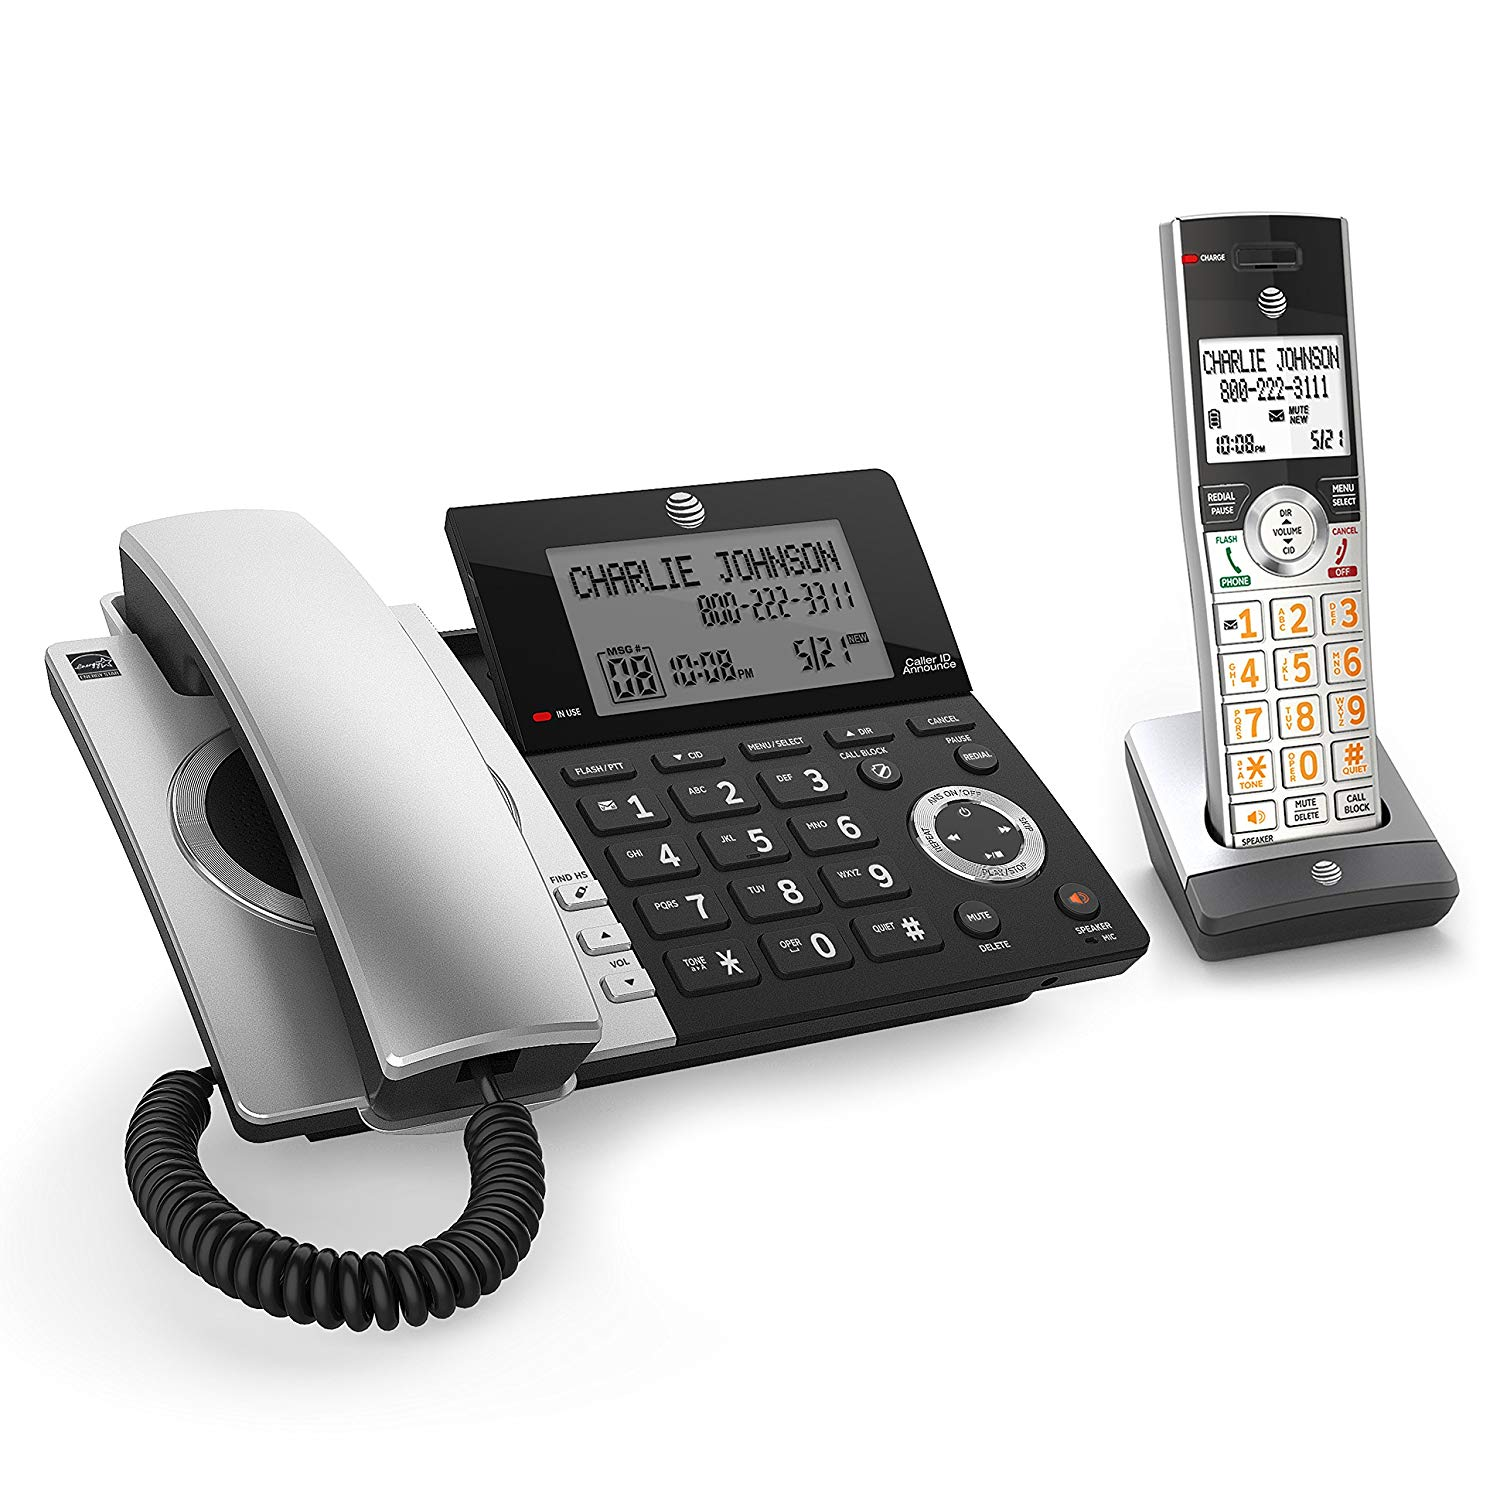 a house phone home phones way to stay connected at home ATu0026T CL84107 DECT 6.0 Expandable CordedCordless Phone with Smart Call  Blocker